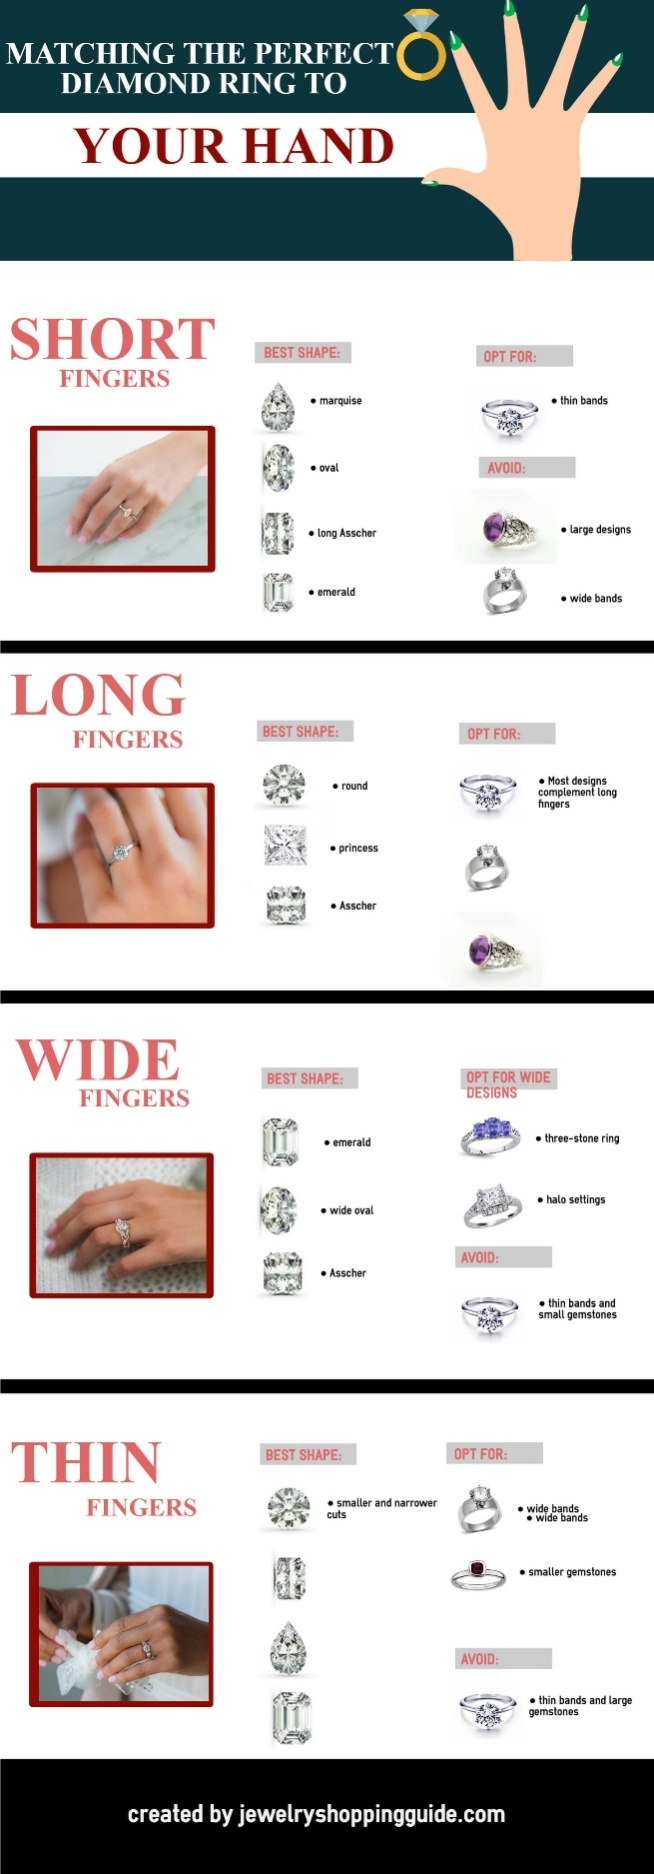 c-users-hamid-dropbox-jewelry-shopping-guide-othe Top 5 Diamond Cuts for Your Engagement Ring